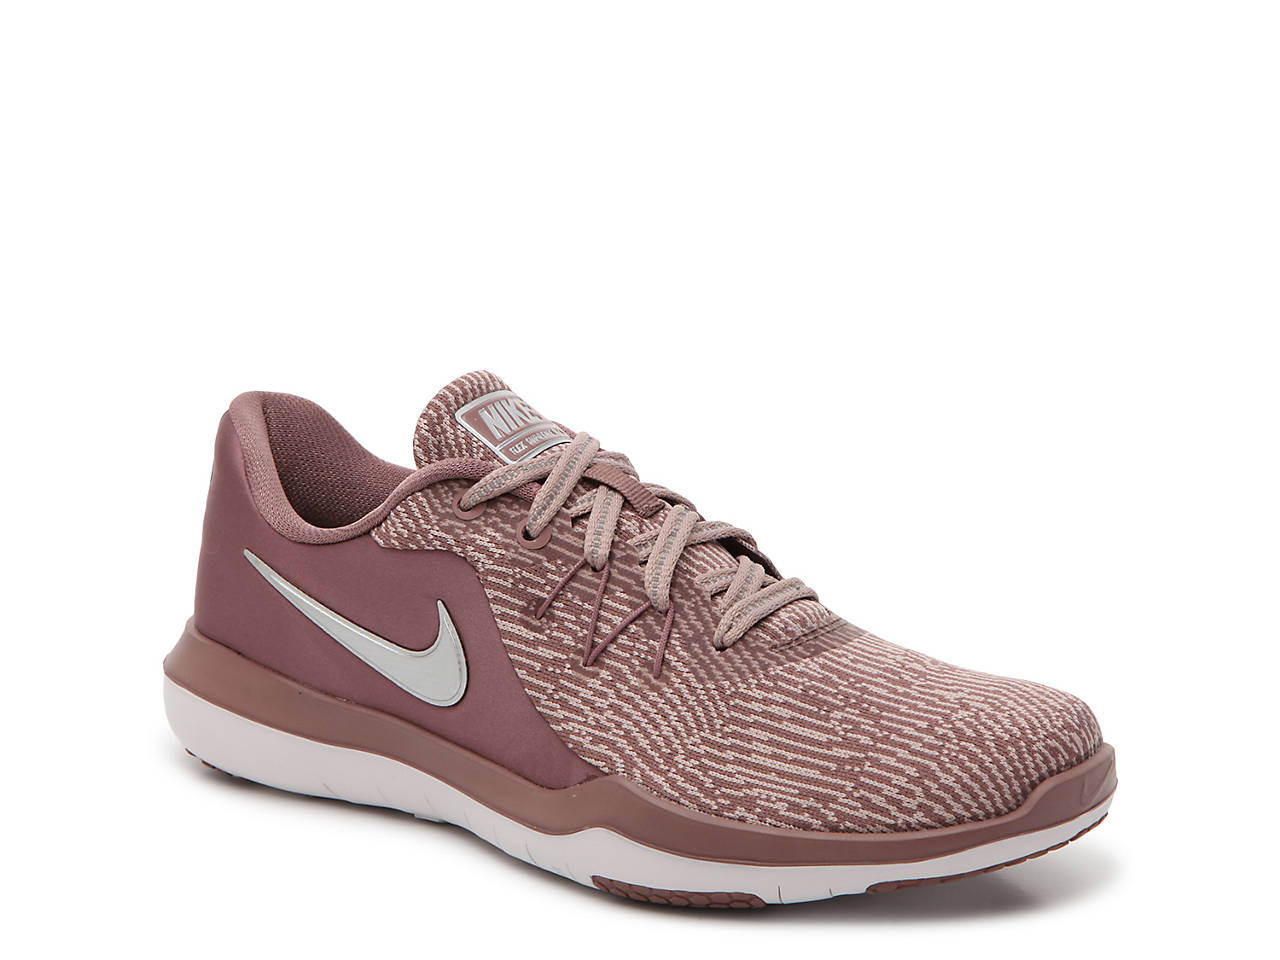 buy popular 61ac0 cd63f Nike. Flex Superior TR 8 Lightweight Training Shoe - Women s